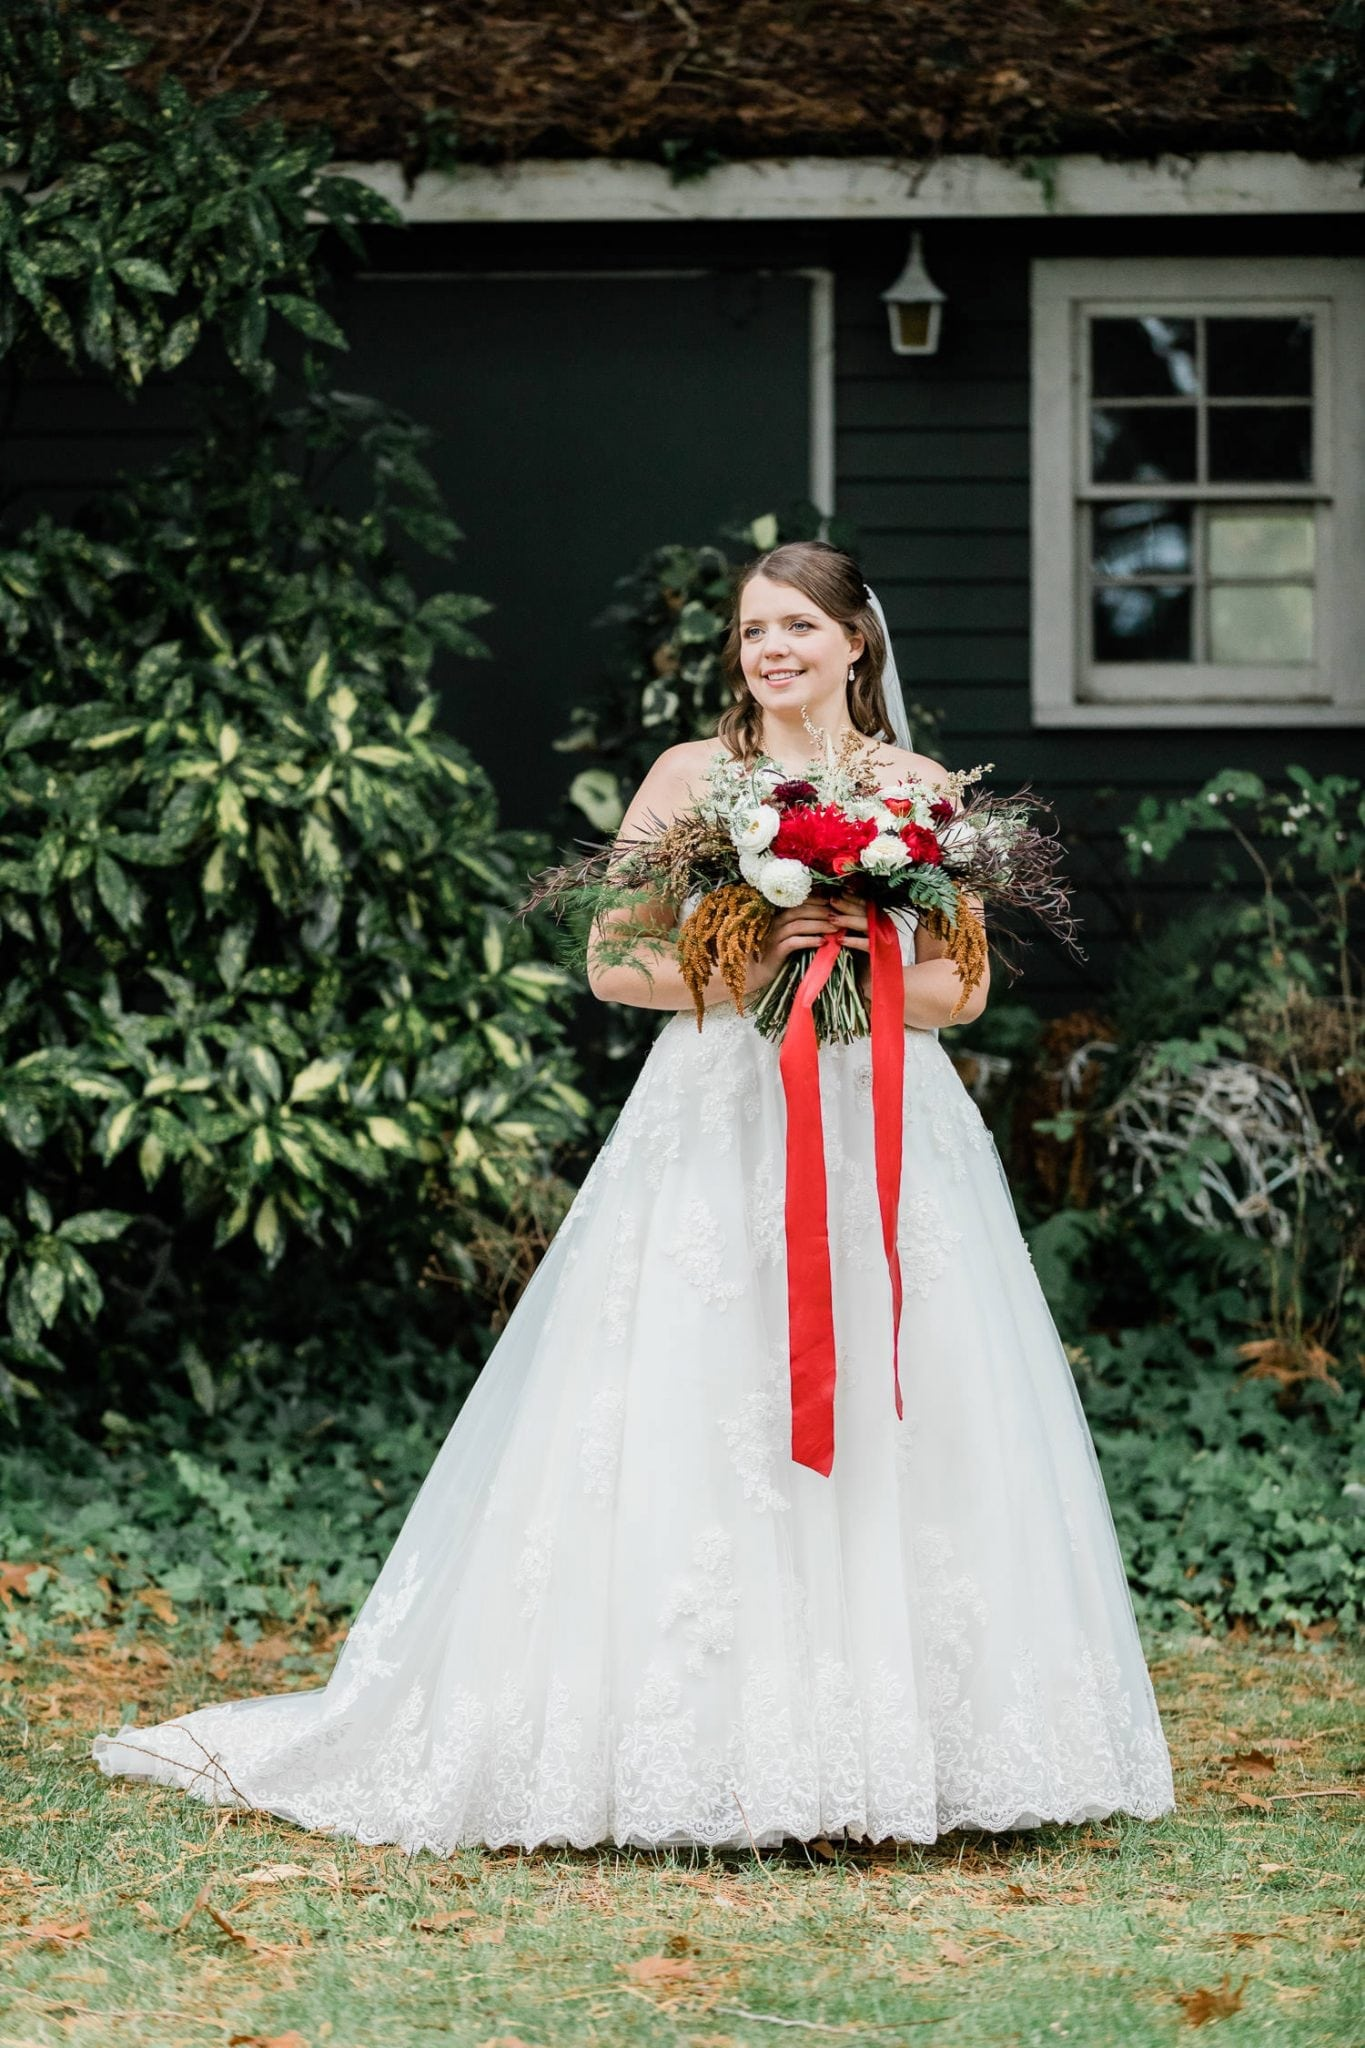 Rustic backyard wedding picture with bride | Vancouver wedding photographer